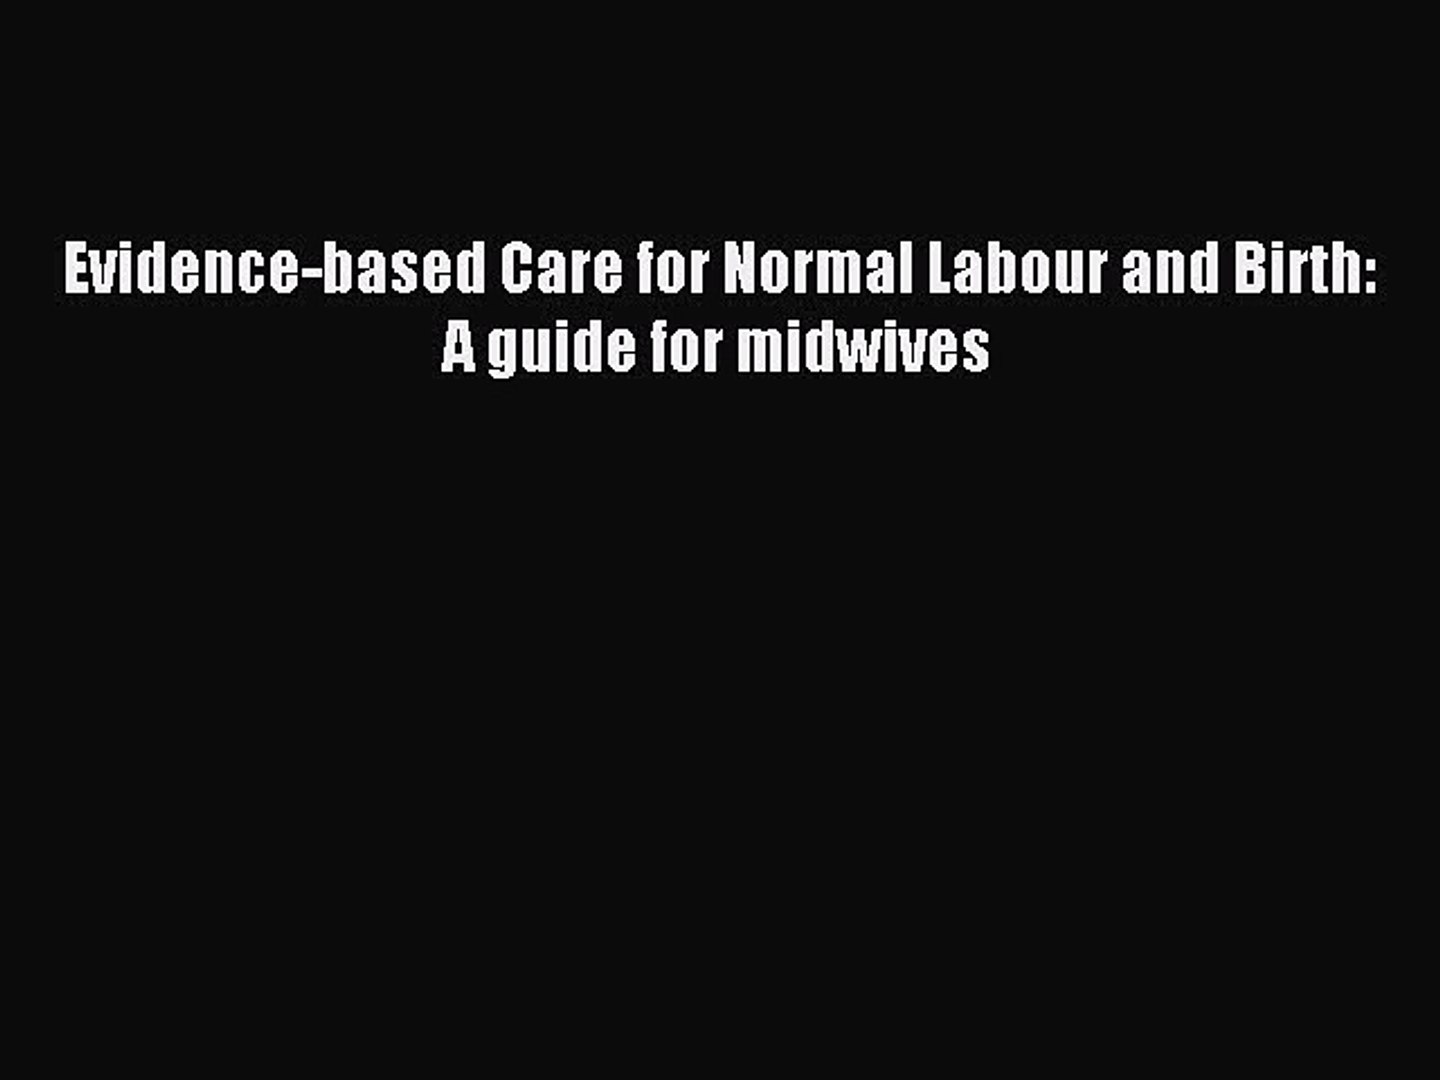 Evidence-Based Care for Normal Labour and Birth: A Guide for Midwives